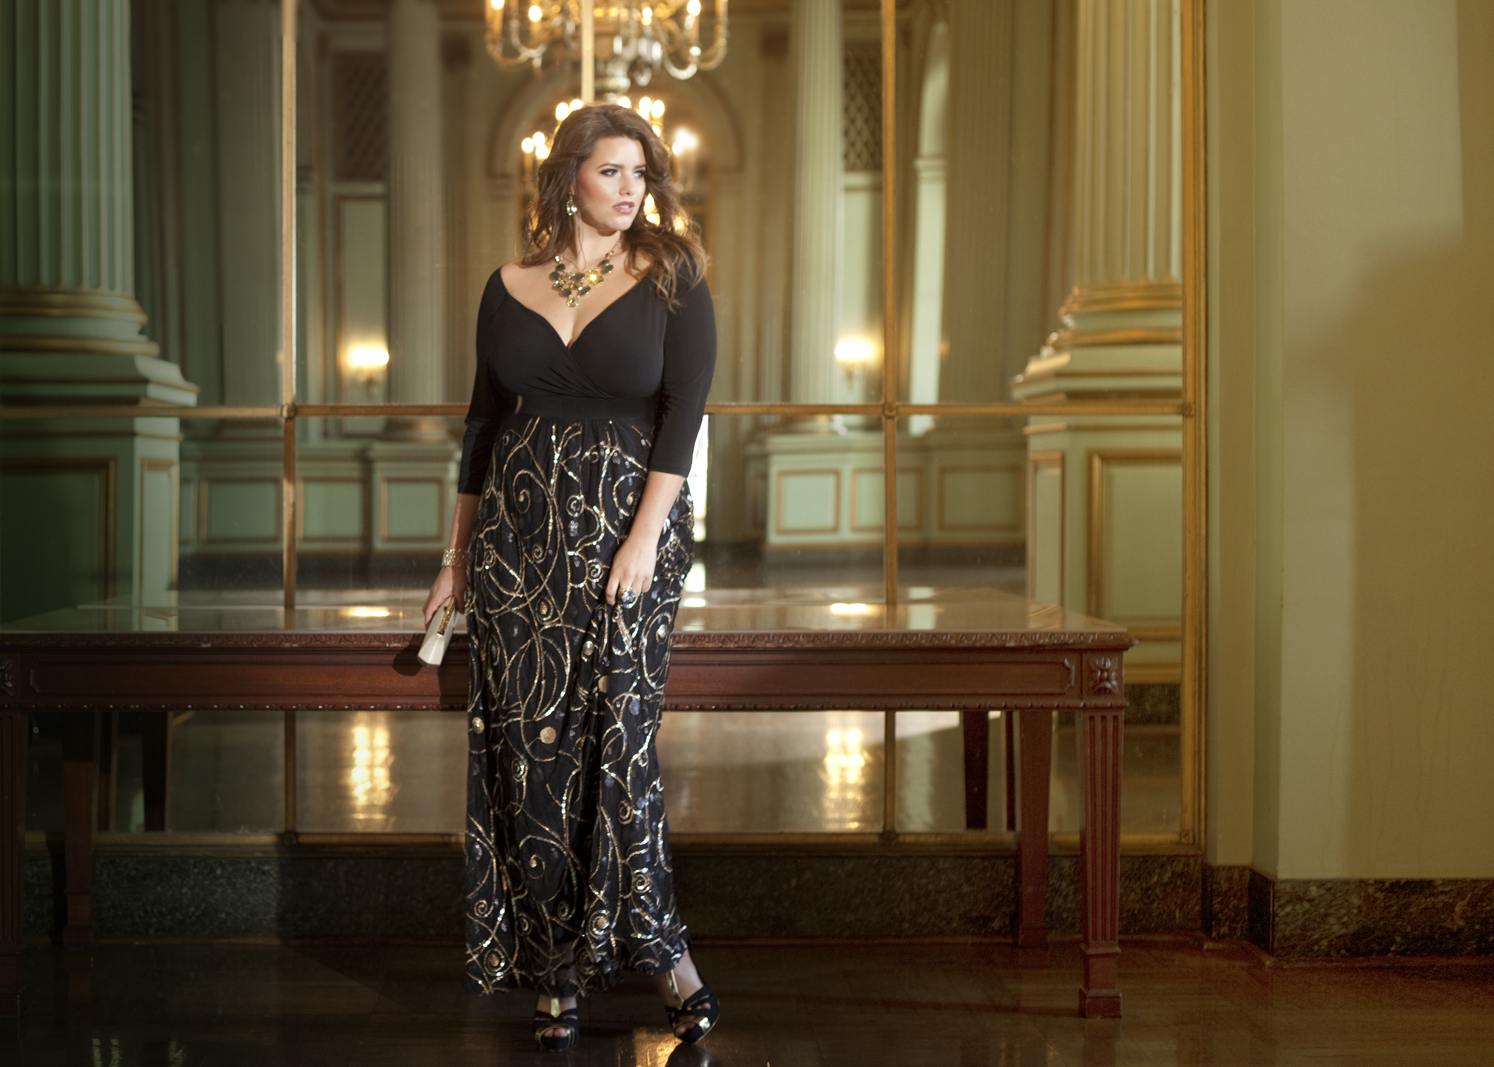 7011a01f2f62 I love the fact that Yuliya Raquel, IGIGI, uses plus sized models. Sarah  Slick, pictured above looks beautiful and inspires me to buy nice clothing  for ...